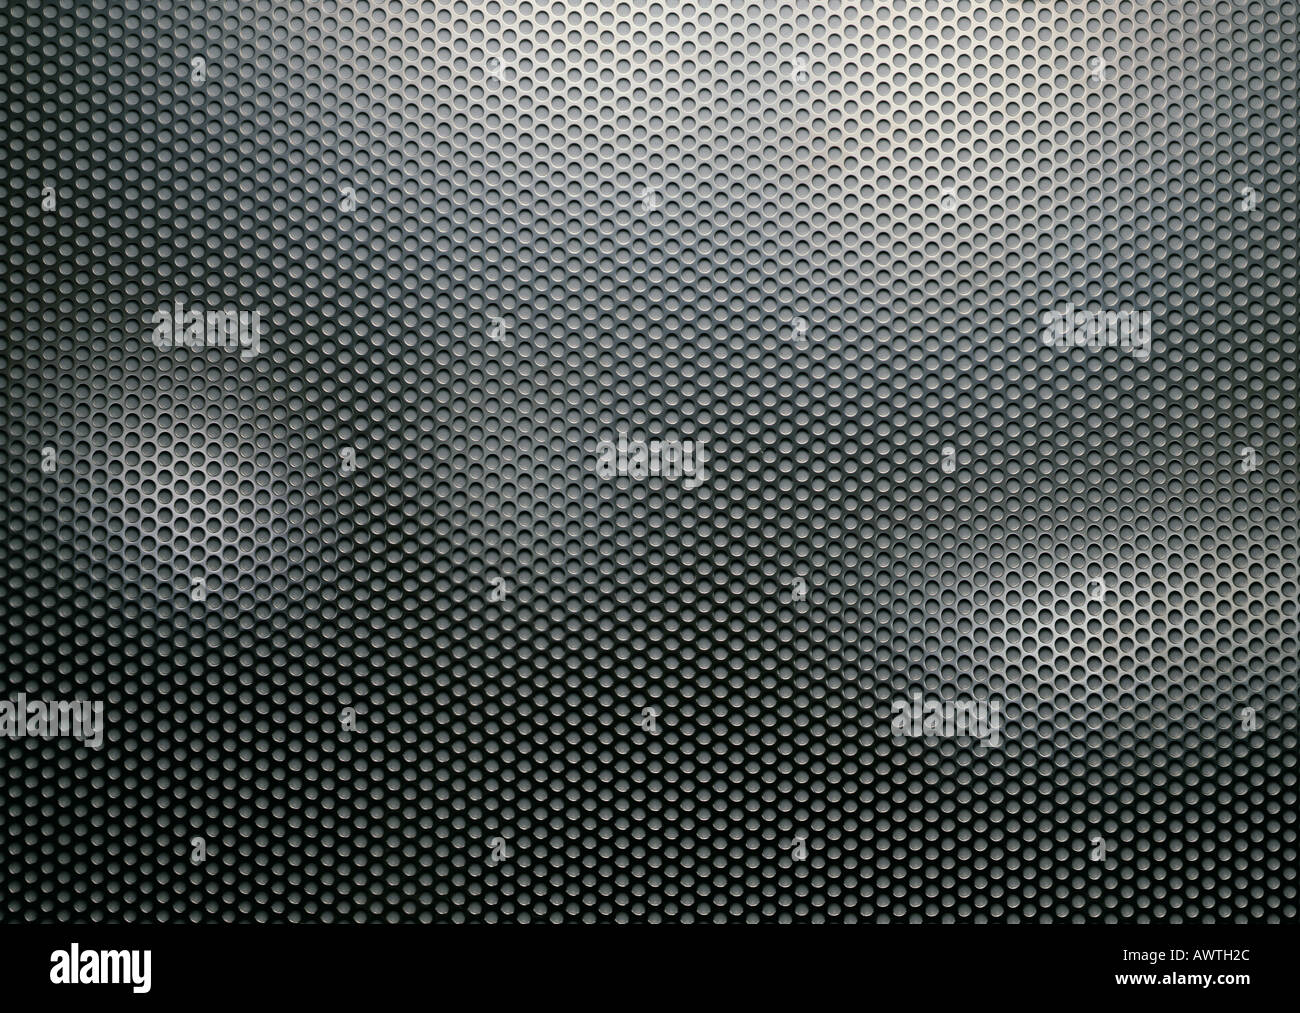 Metal sheet perforated with holes, close-up, full frame - Stock Image